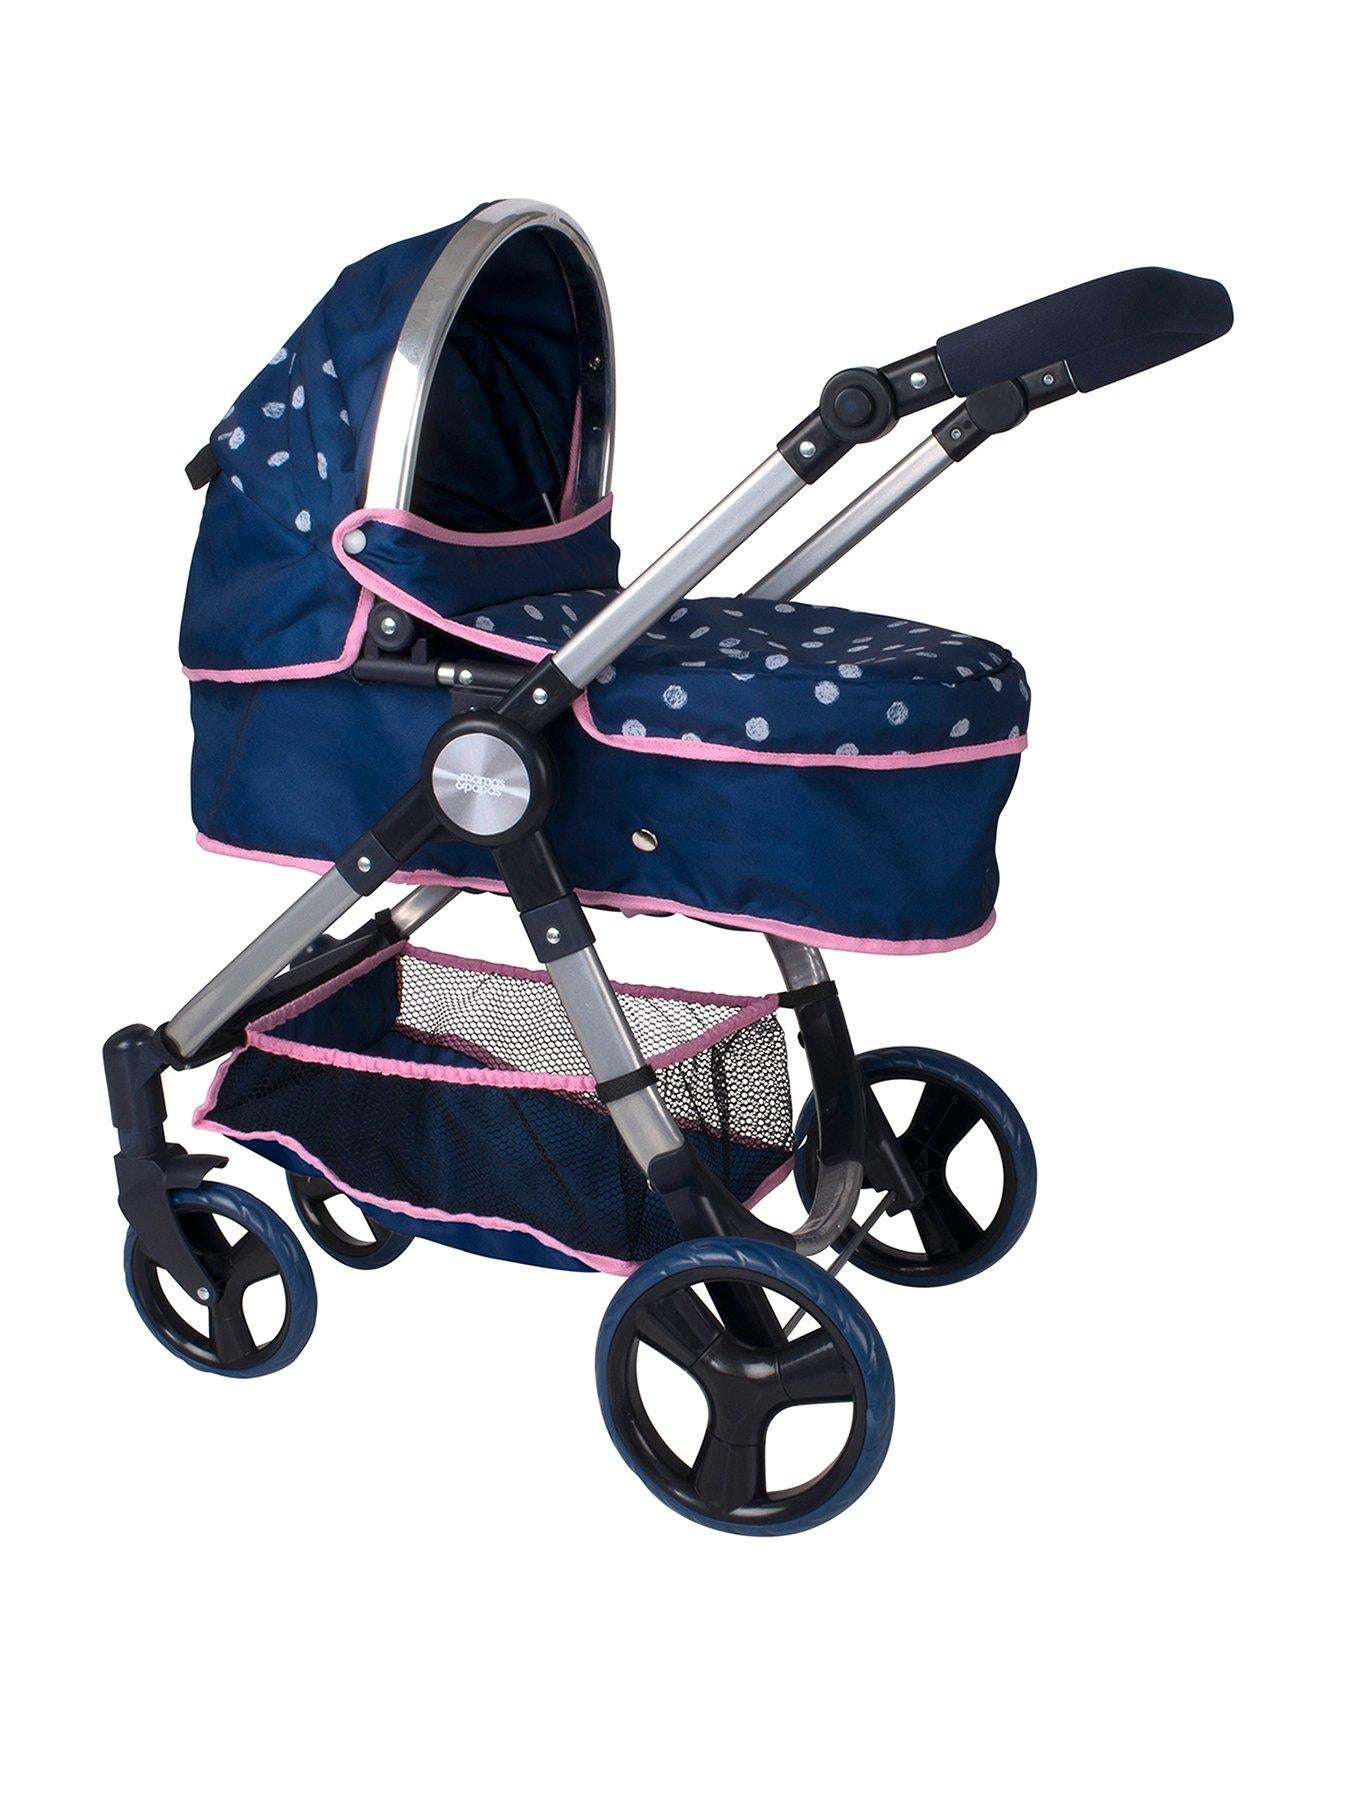 Mamas & Papas Junior Ocarro Doll's Pram Travel System